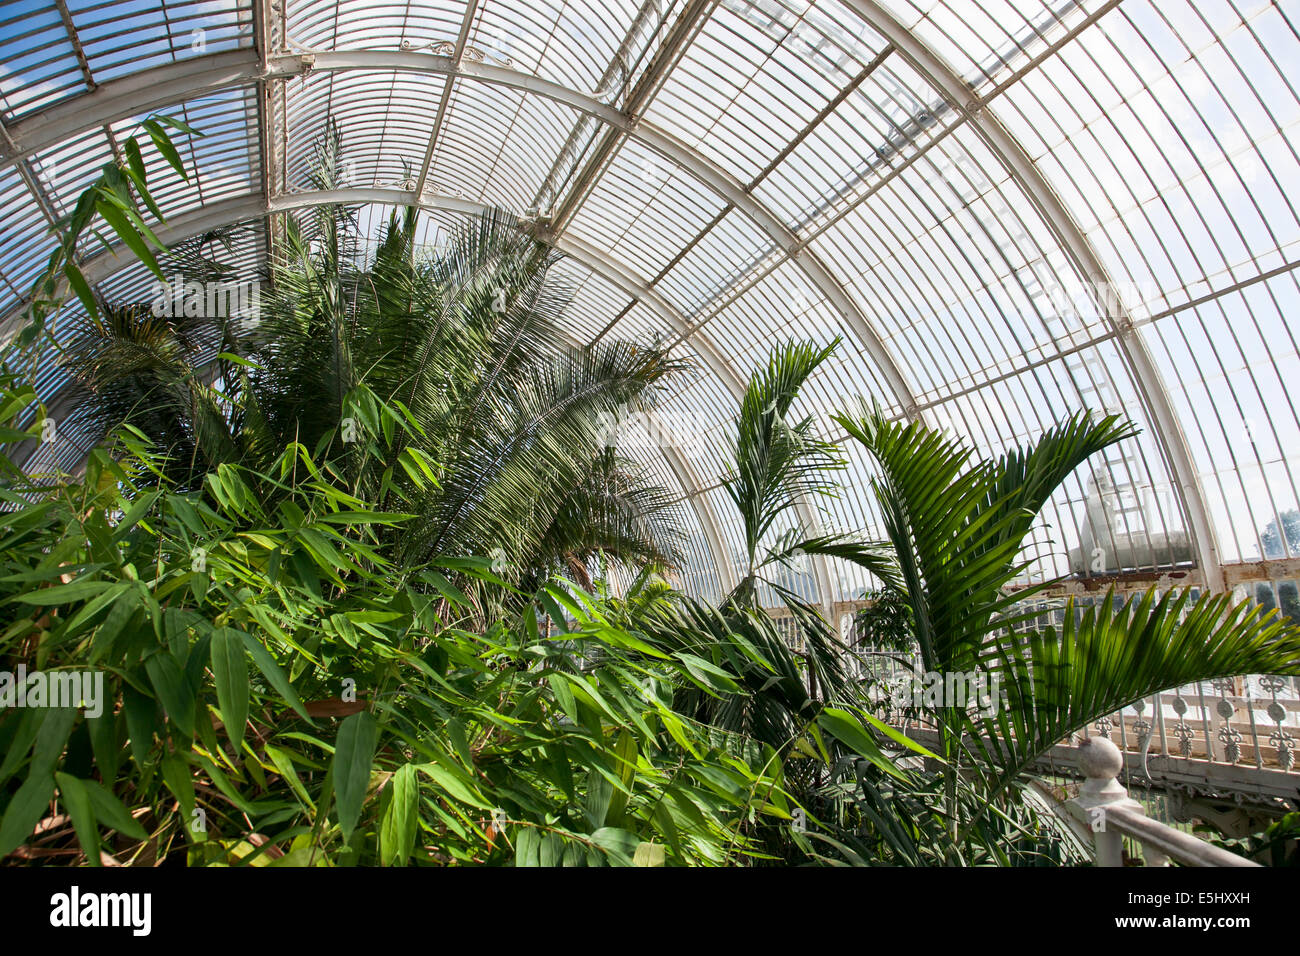 Inside The Palm House At Kew Gardens   London, England   Stock Image